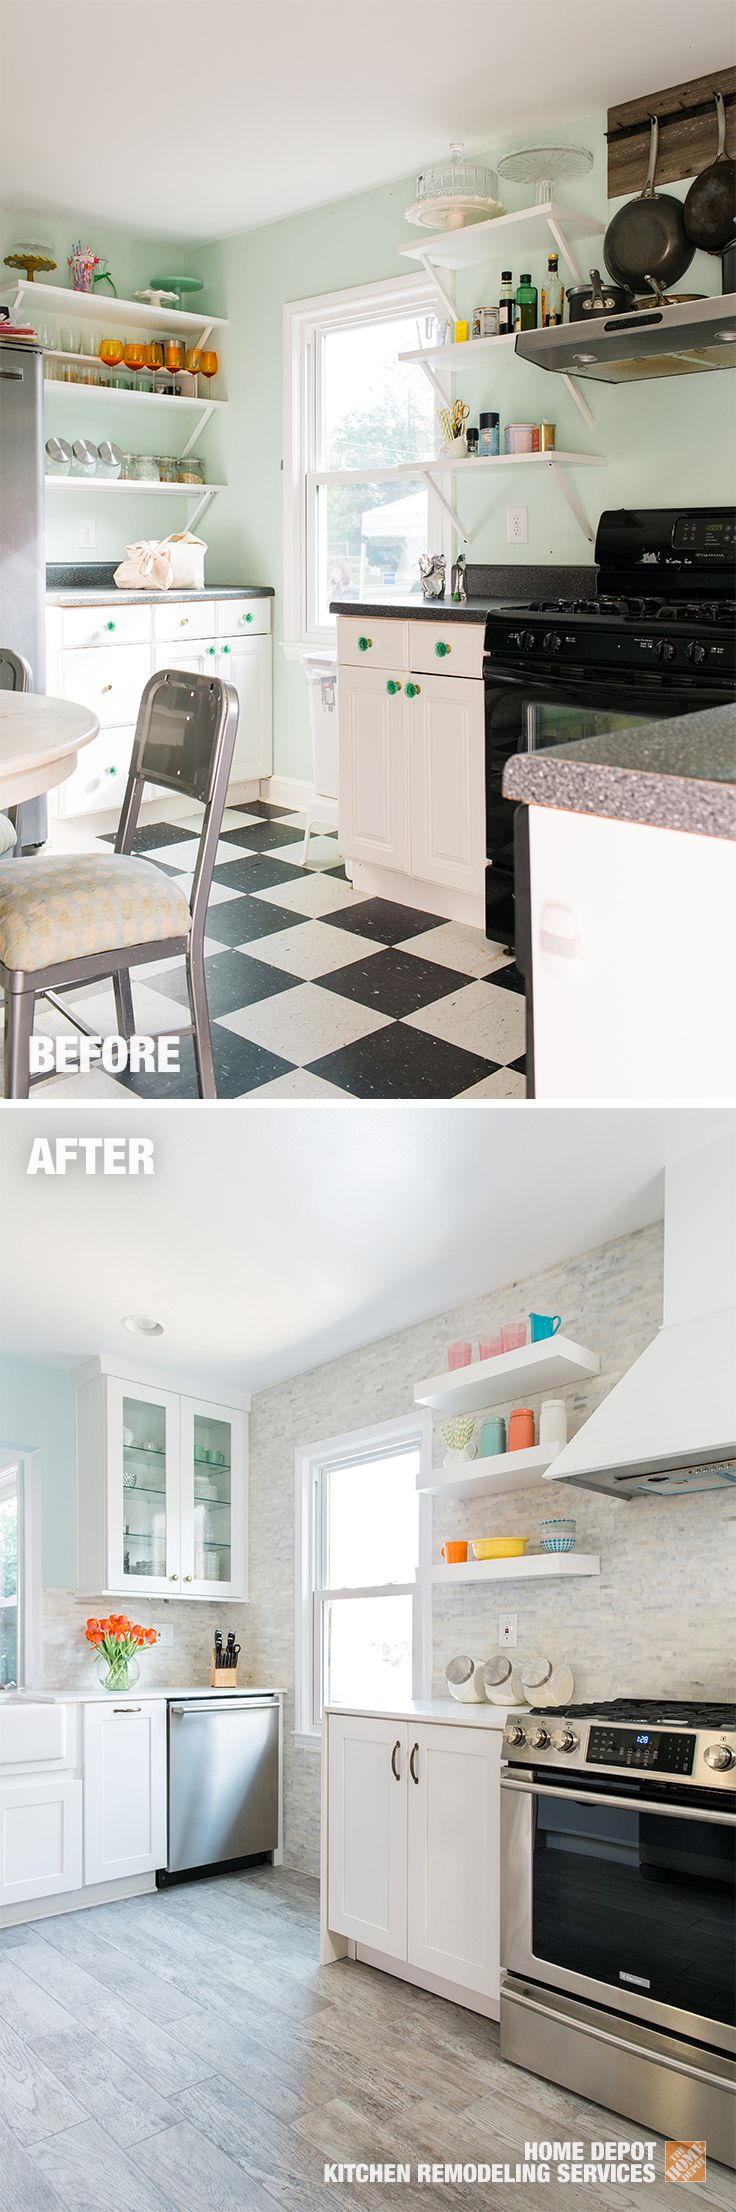 146 best Small Spaces, Big Impact images on Pinterest   Kitchen ...